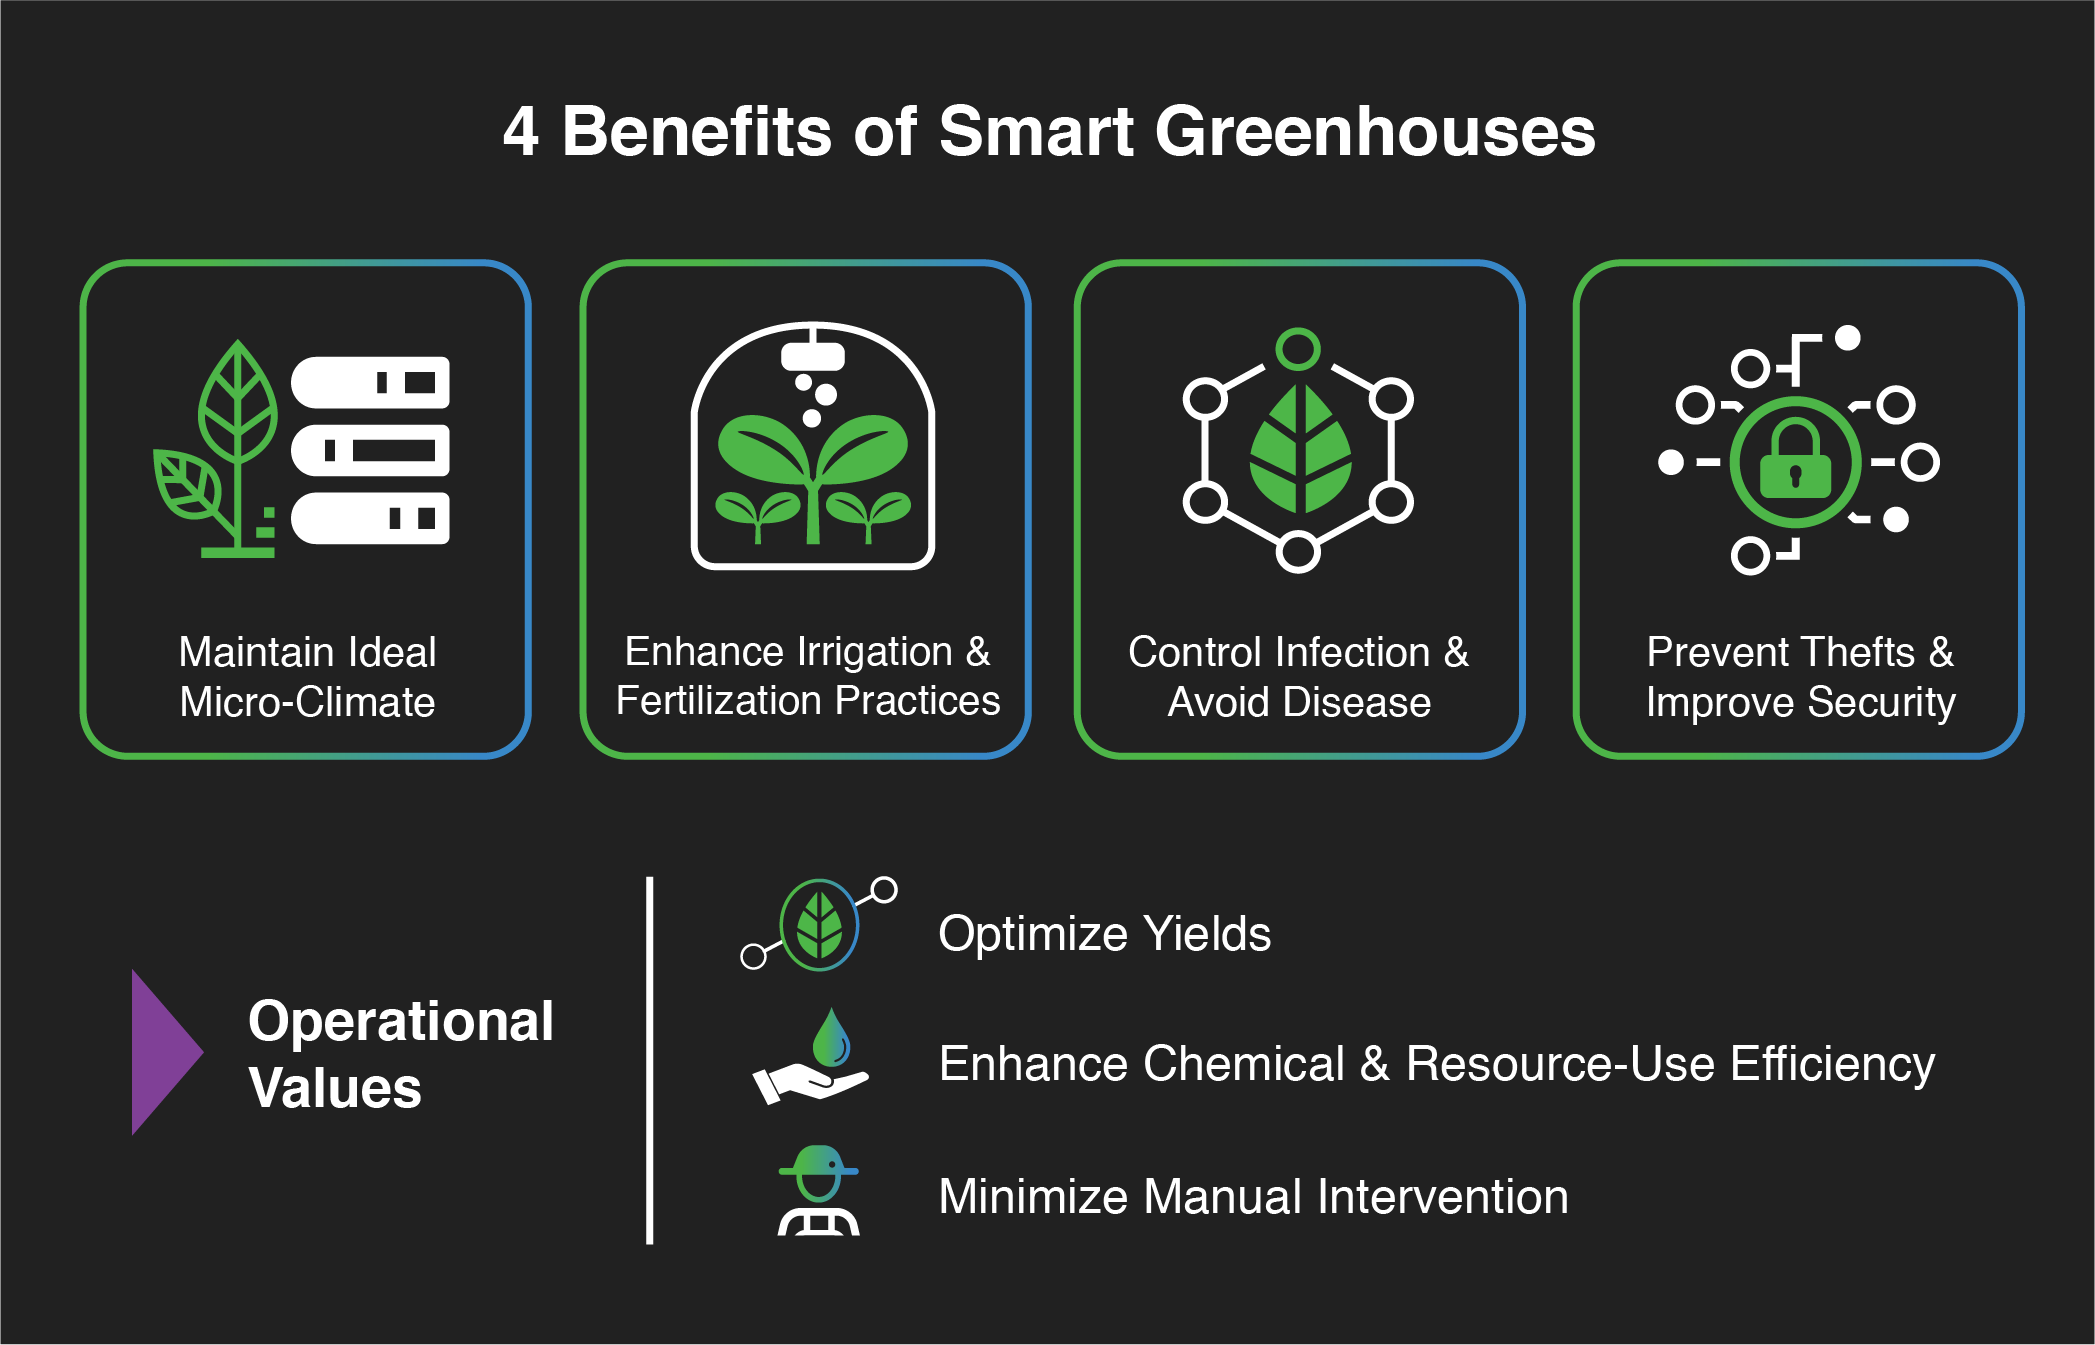 Technology Management Image: 4 Benefits Of Smart Greenhouses And How To Get Started